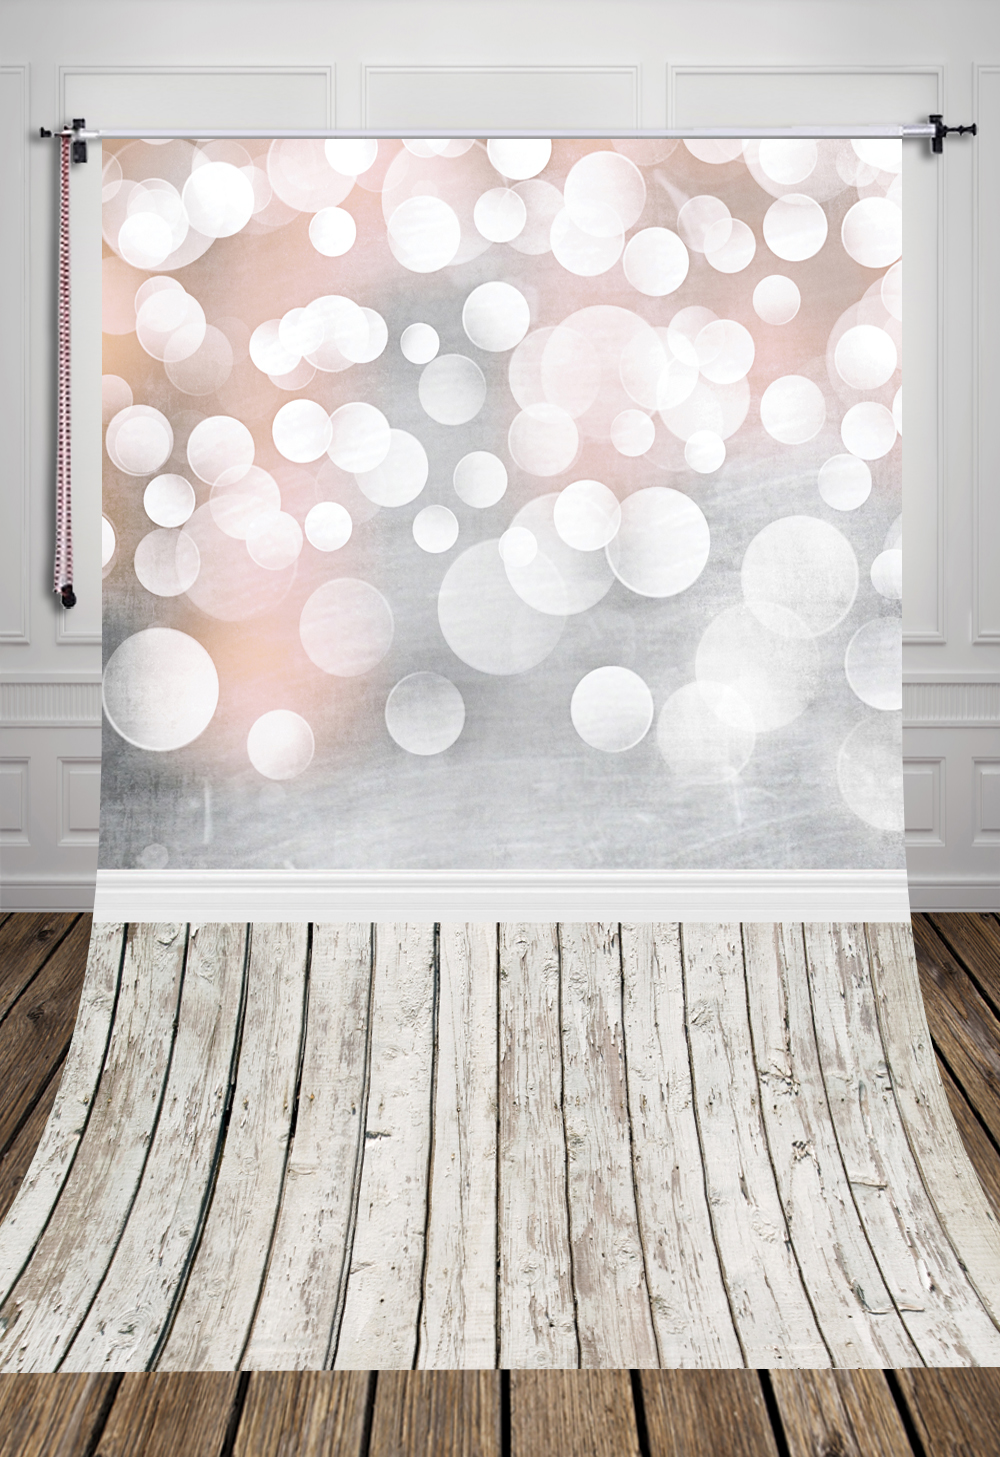 5x7ft (1.5x2.2m) hot sale white polka dots print photography backdrop Art fabric newborn pet indoor photography background D-036